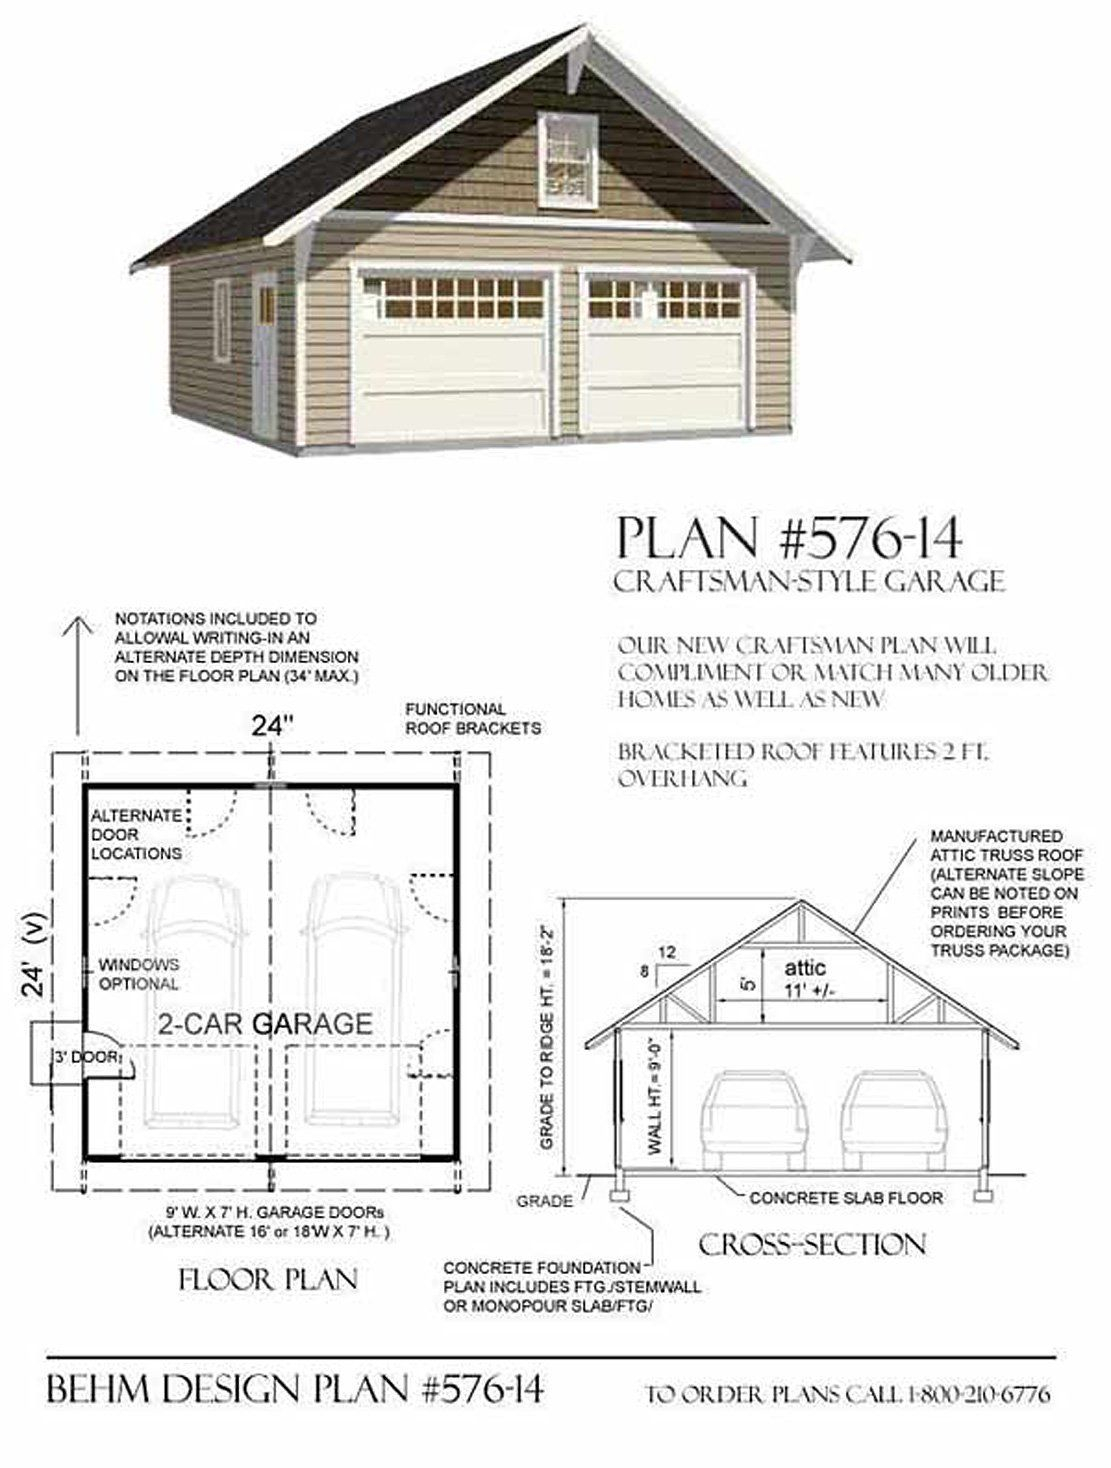 garage plans 2 car craftsman style garage plan 576 14 24 x garage plans 2 car craftsman style garage plan 576 14 24